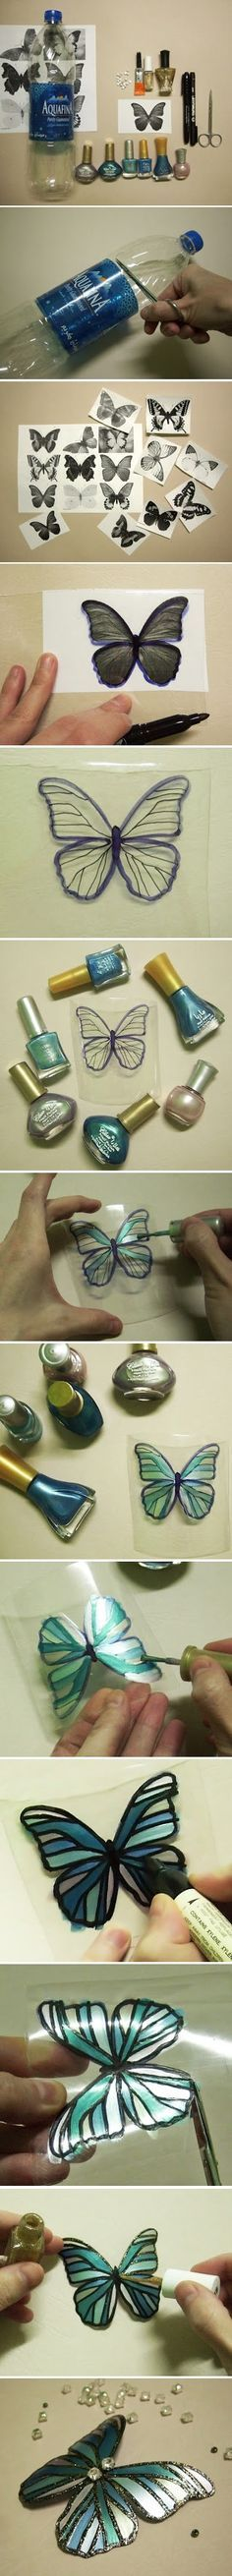 DIY Butterflies Made From Plastic Bottles